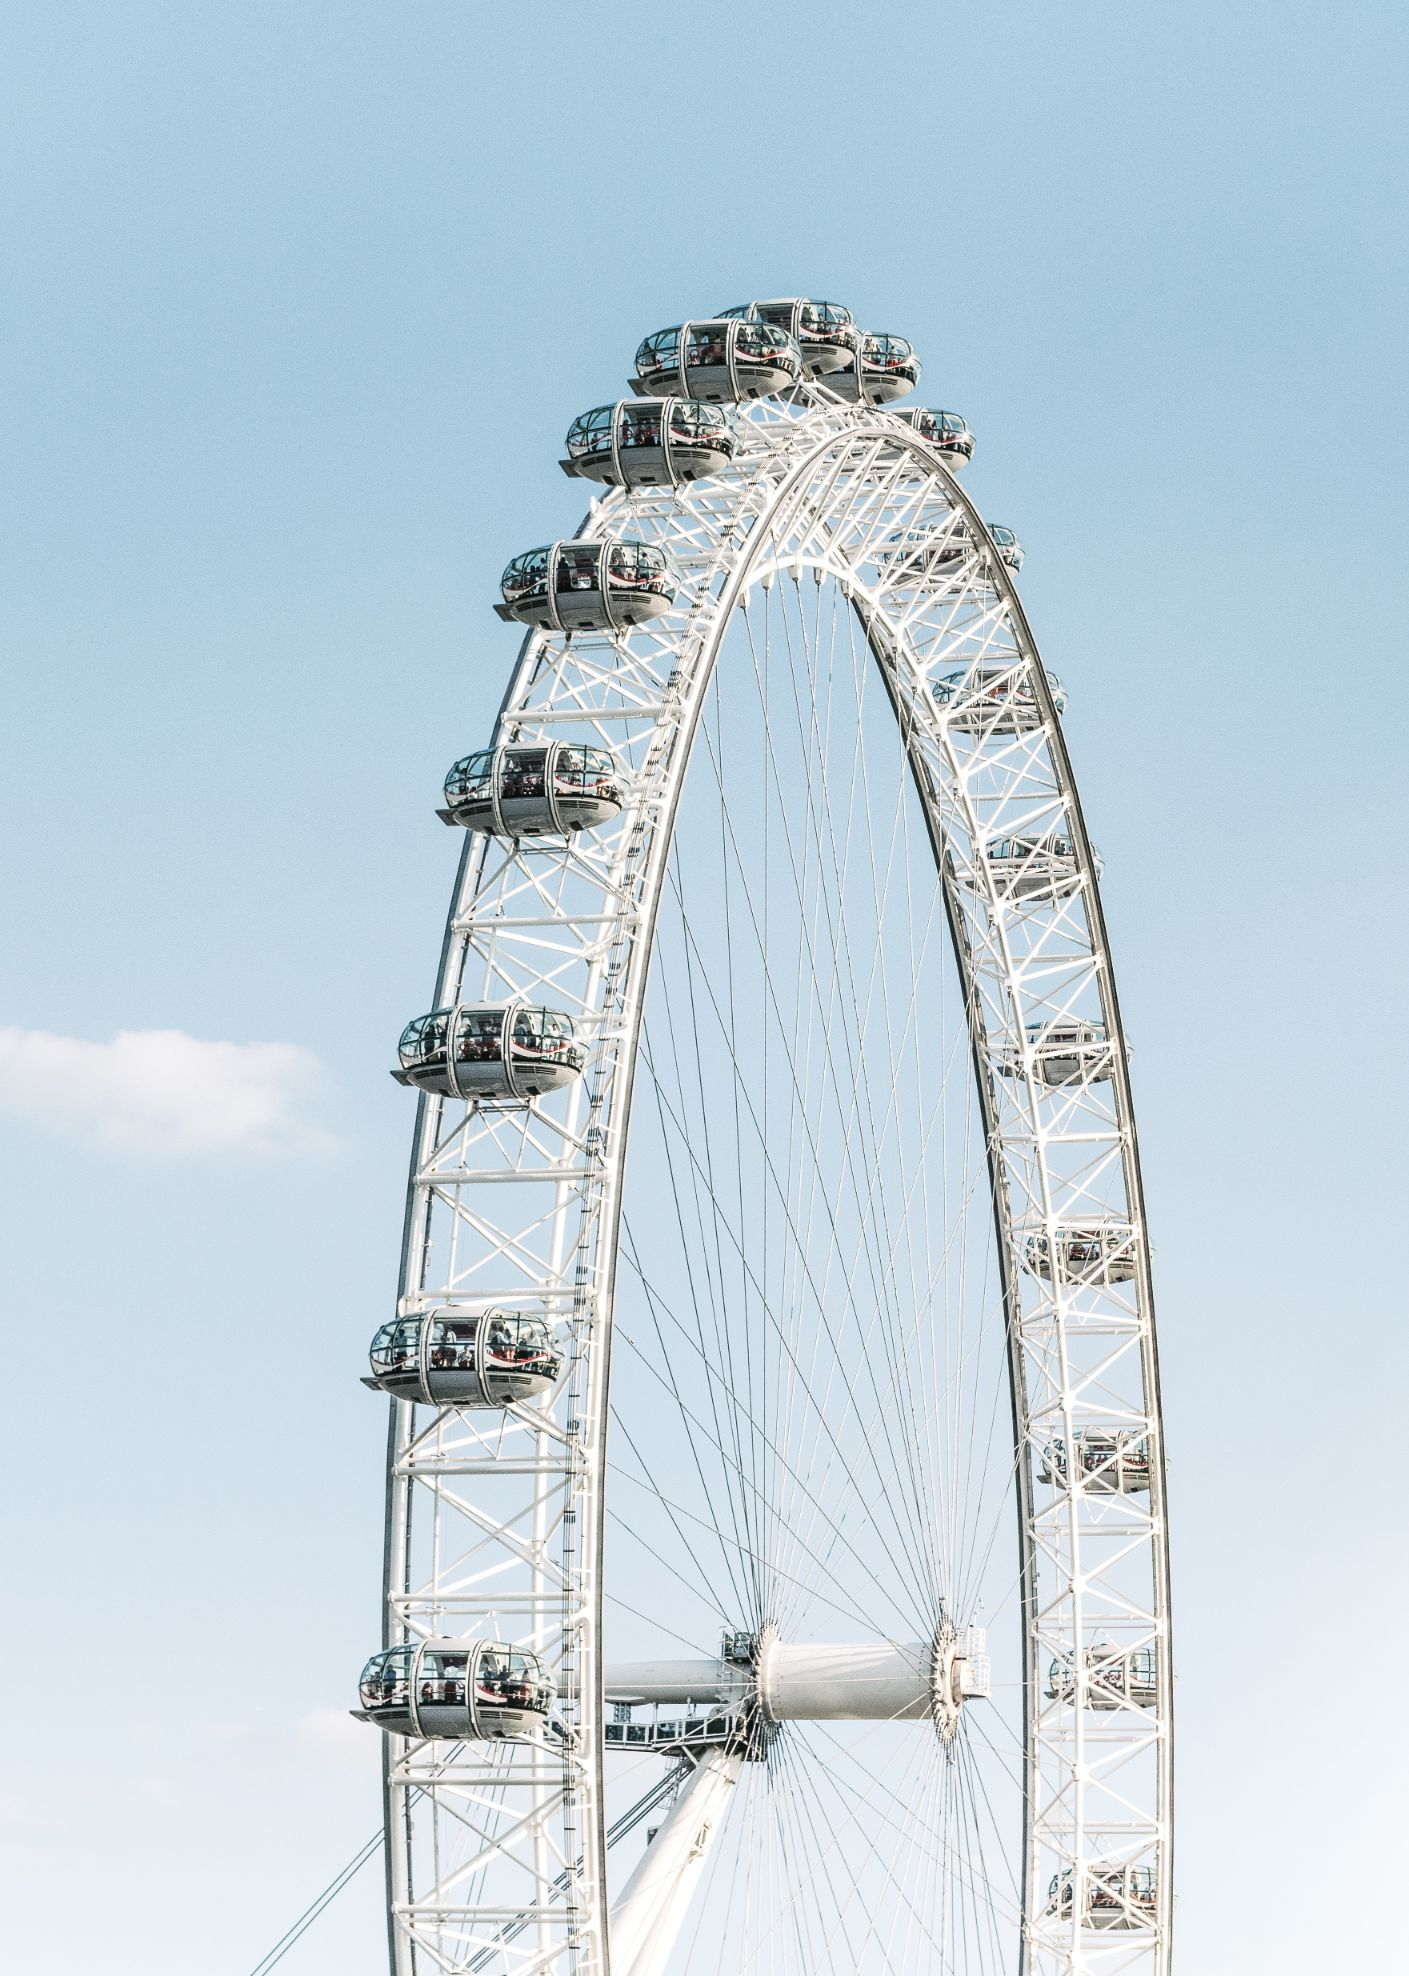 London Eye wheel with blue sky in the background